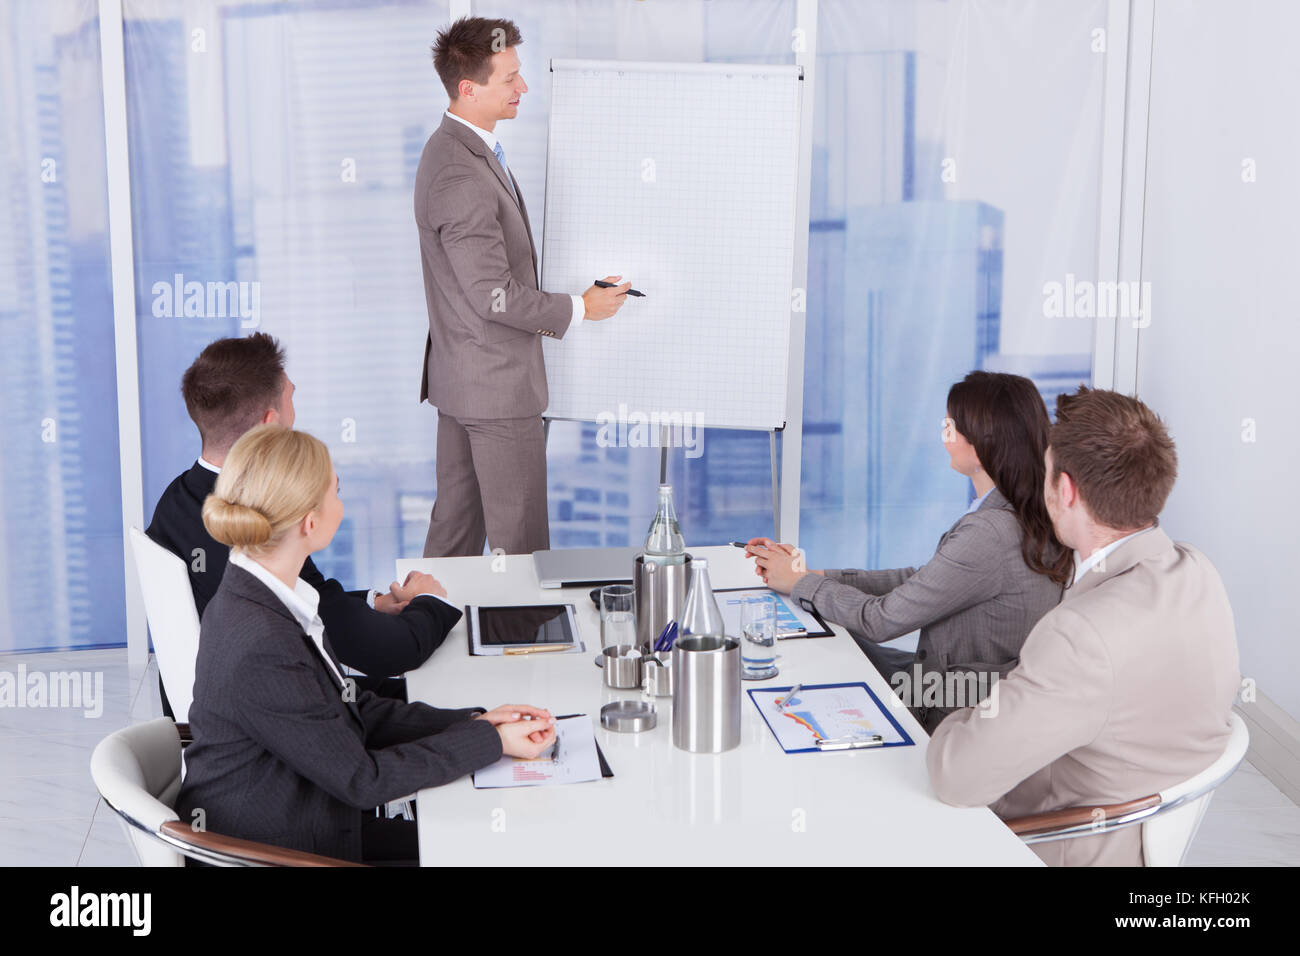 Young businessman giving presentation to colleagues at office - Stock Image